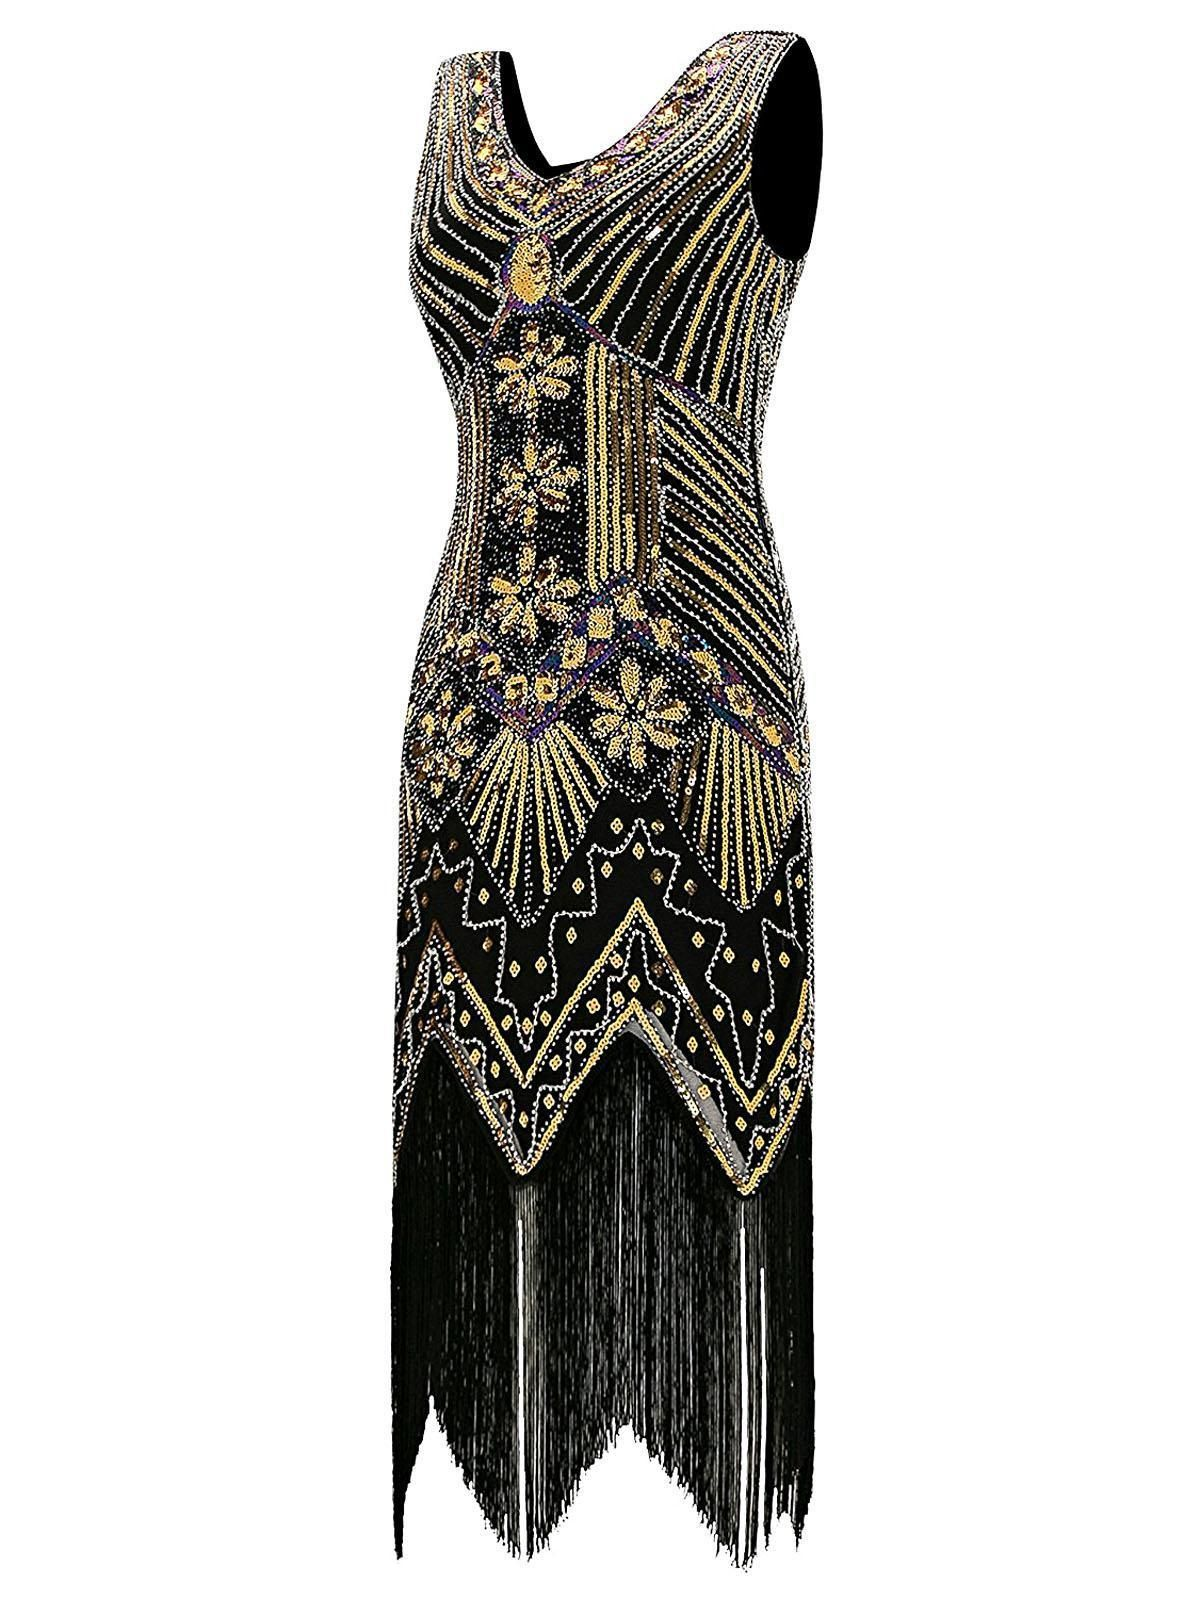 03b5a7687ab Gold 1920s Sequined Flapper Dress – Retro Stage - Chic Vintage Dresses and  Accessories